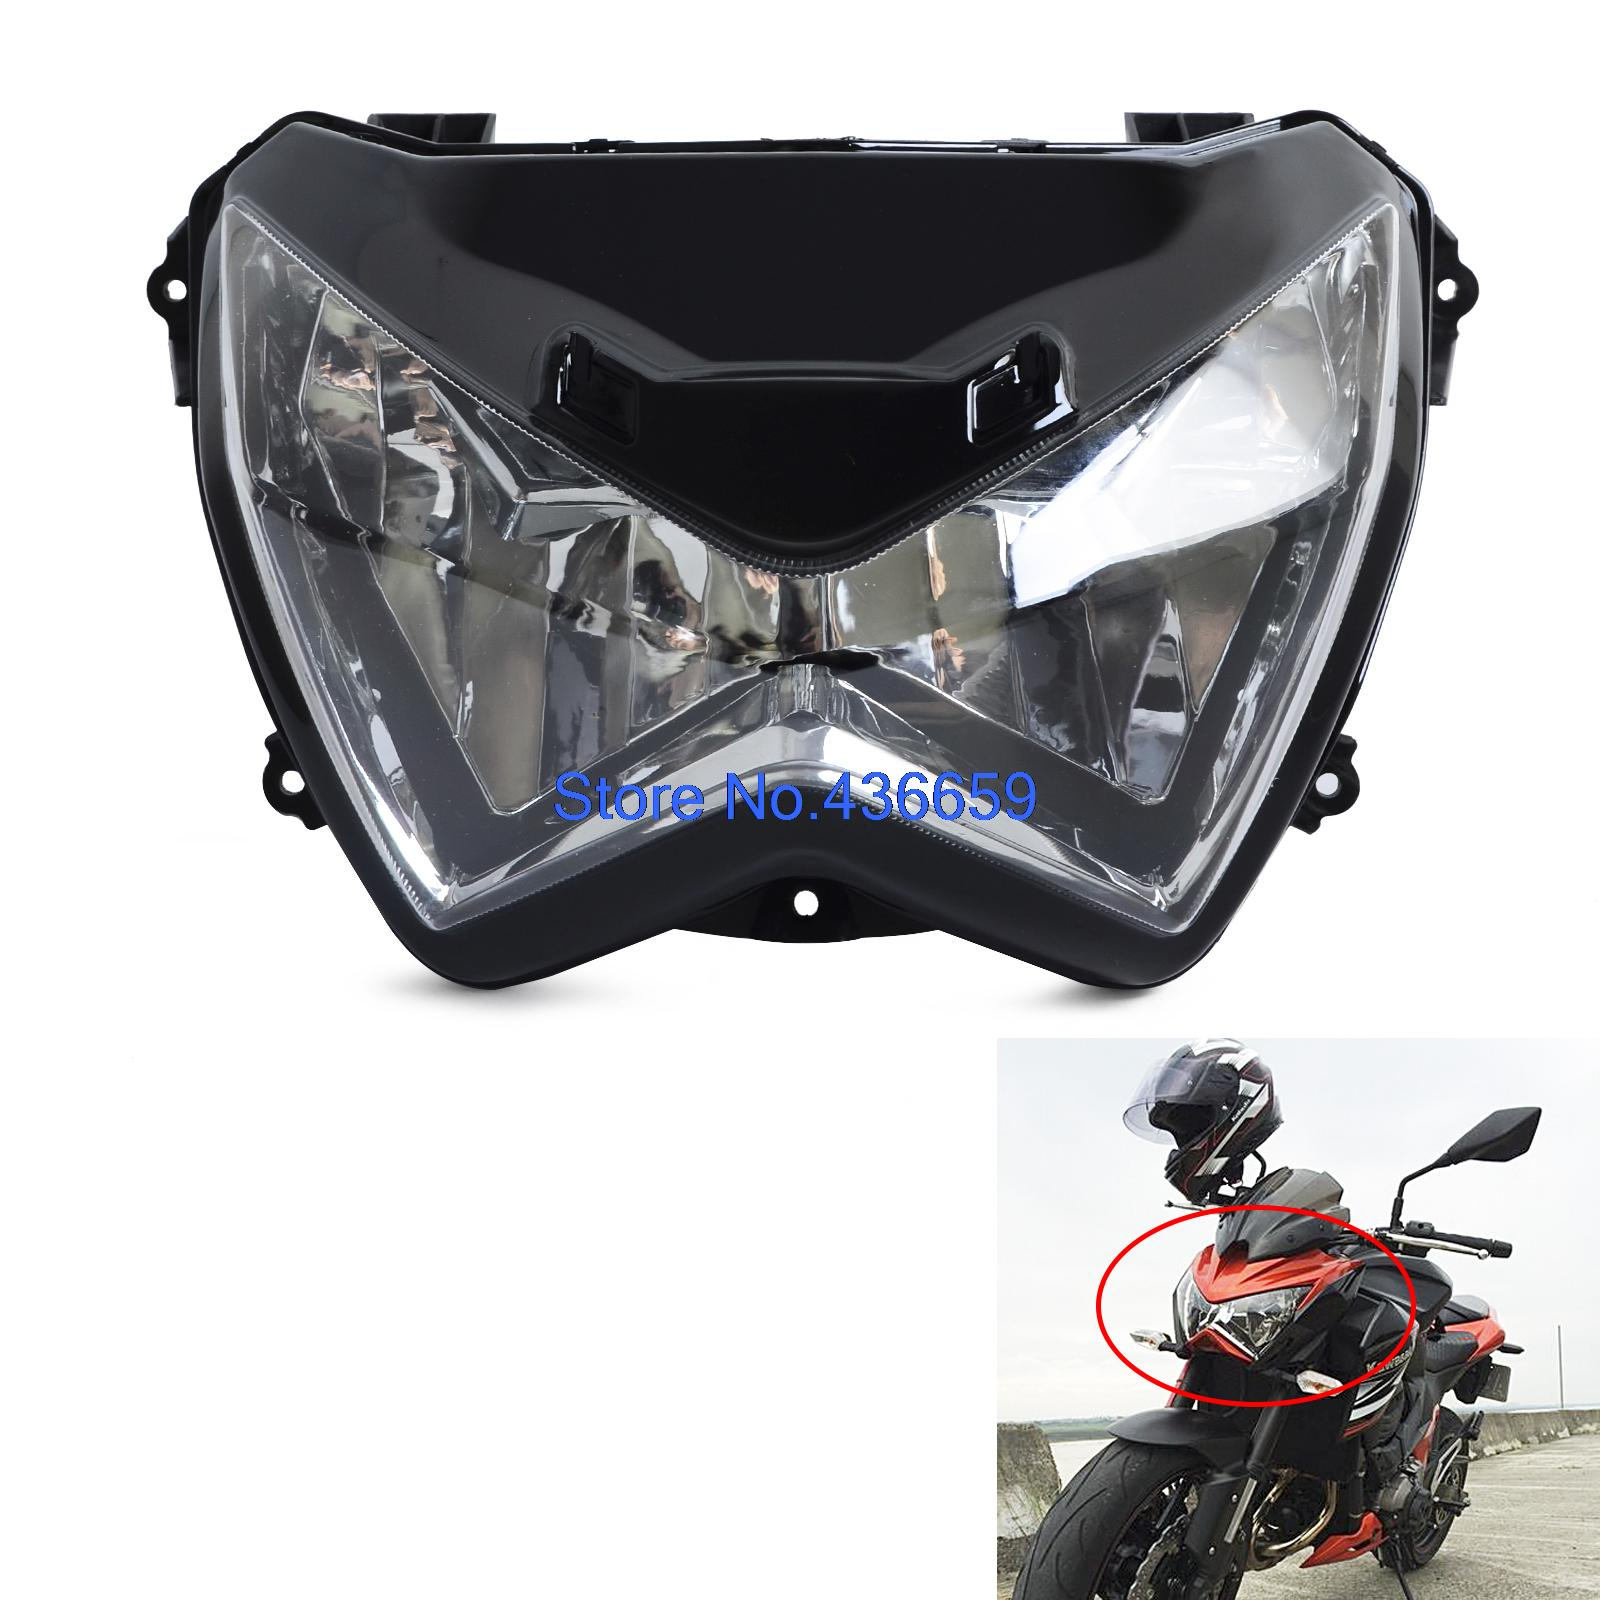 New Clear Headlight Front Head light Lamp For Kawasaki Z250 Z800 2013 2014 2015 Z 250 800 13 14 15 NEW<br><br>Aliexpress